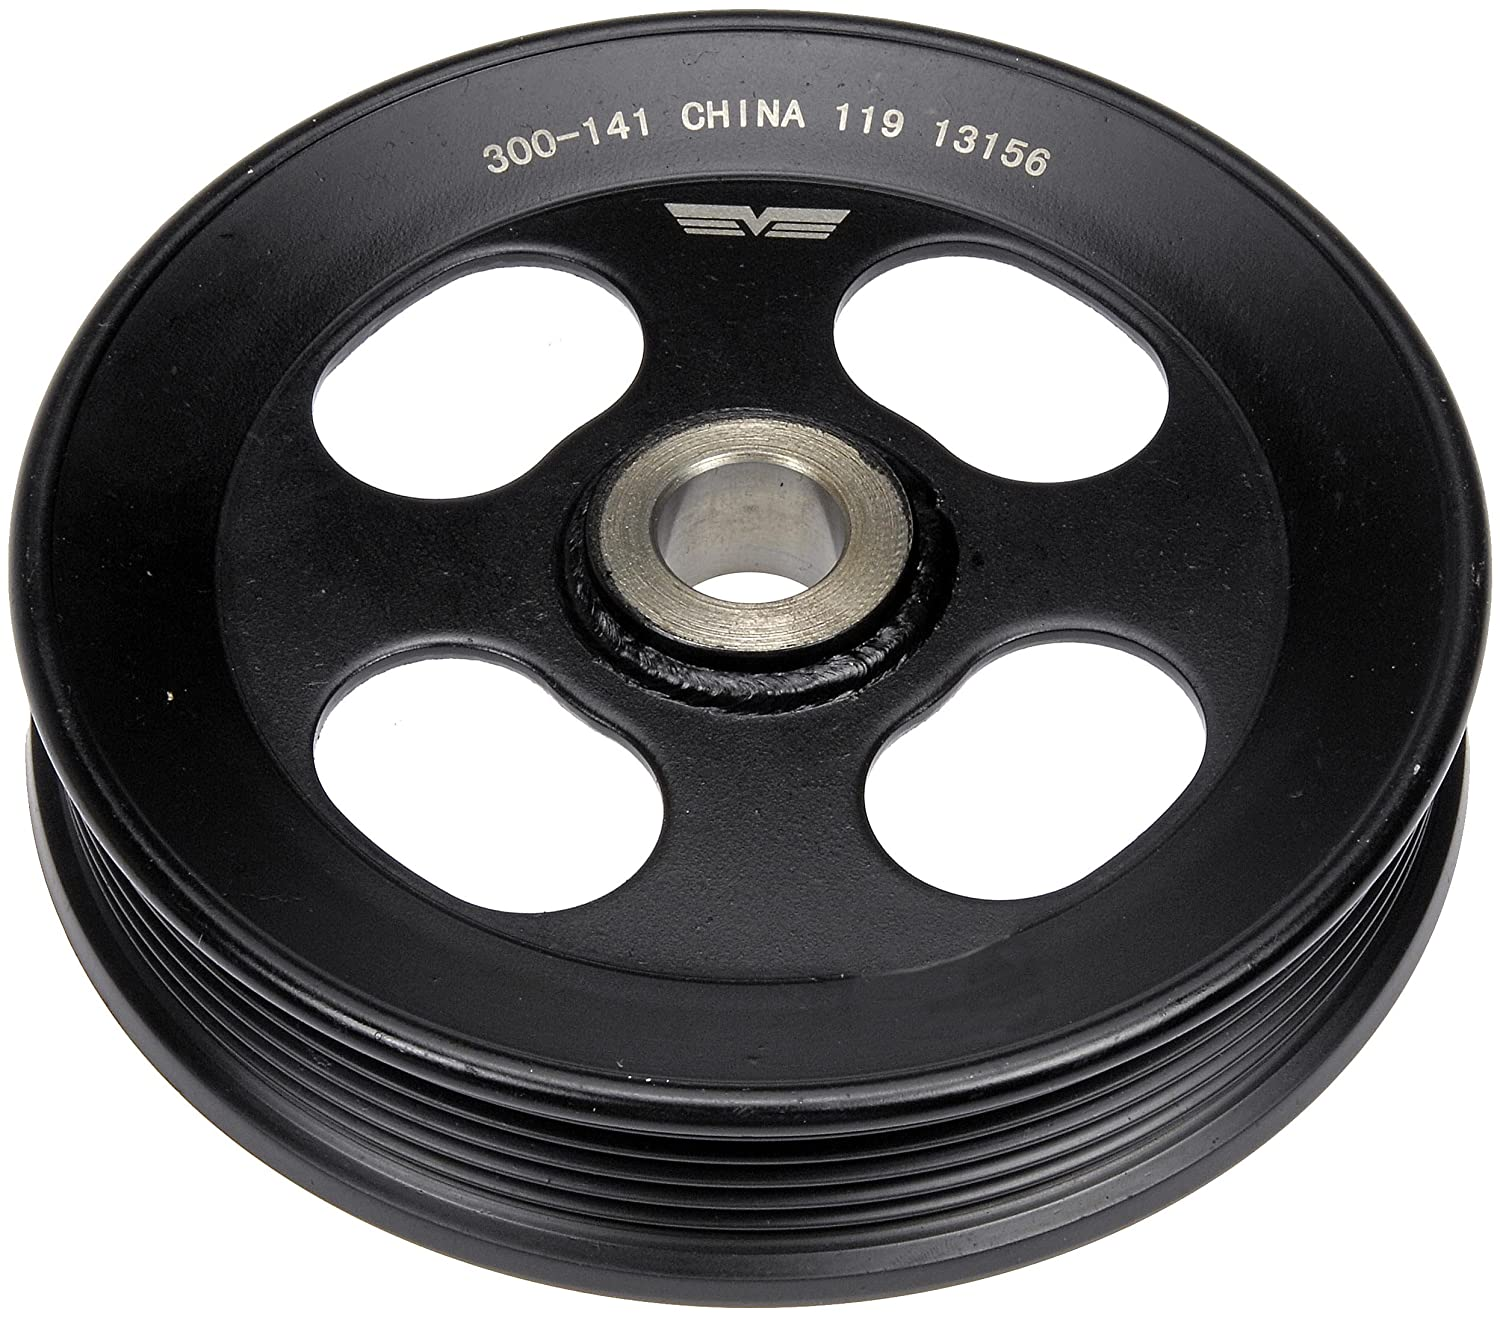 DORMAN 300-141 Power Steering Pump Pulley